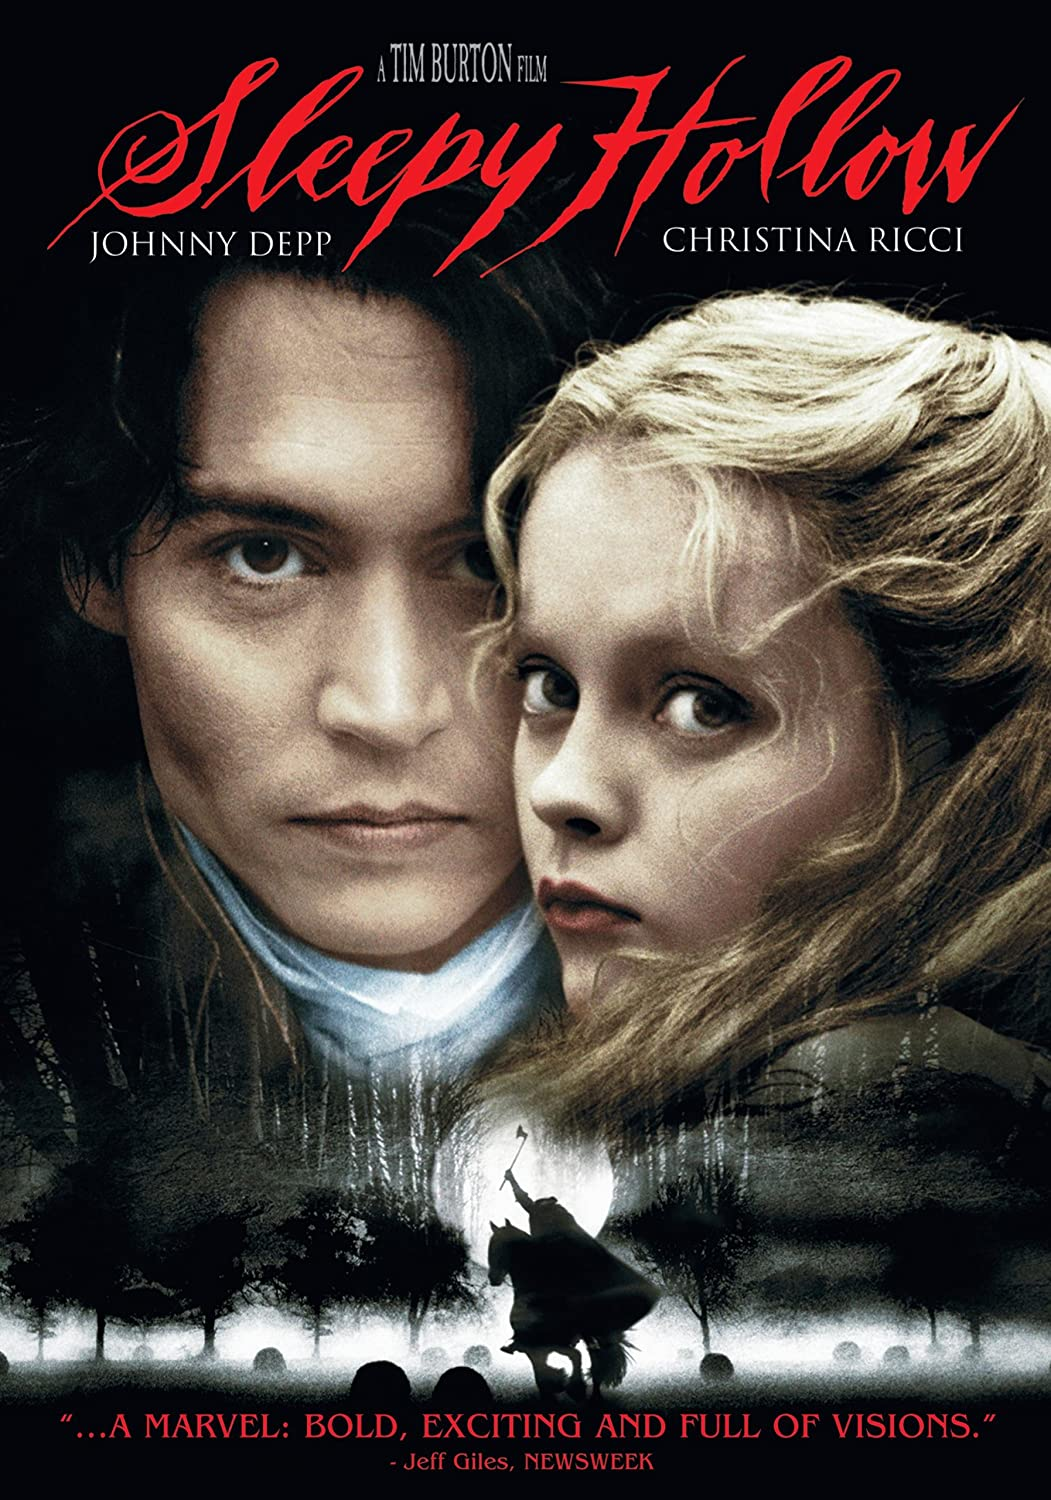 Download image 1700s woman portrait pc android iphone and ipad - Amazon Com Sleepy Hollow 1999 Johnny Depp Christina Ricci Miranda Richardson Michael Gambon Casper Van Dien Jeffrey Jones Richard Griffiths